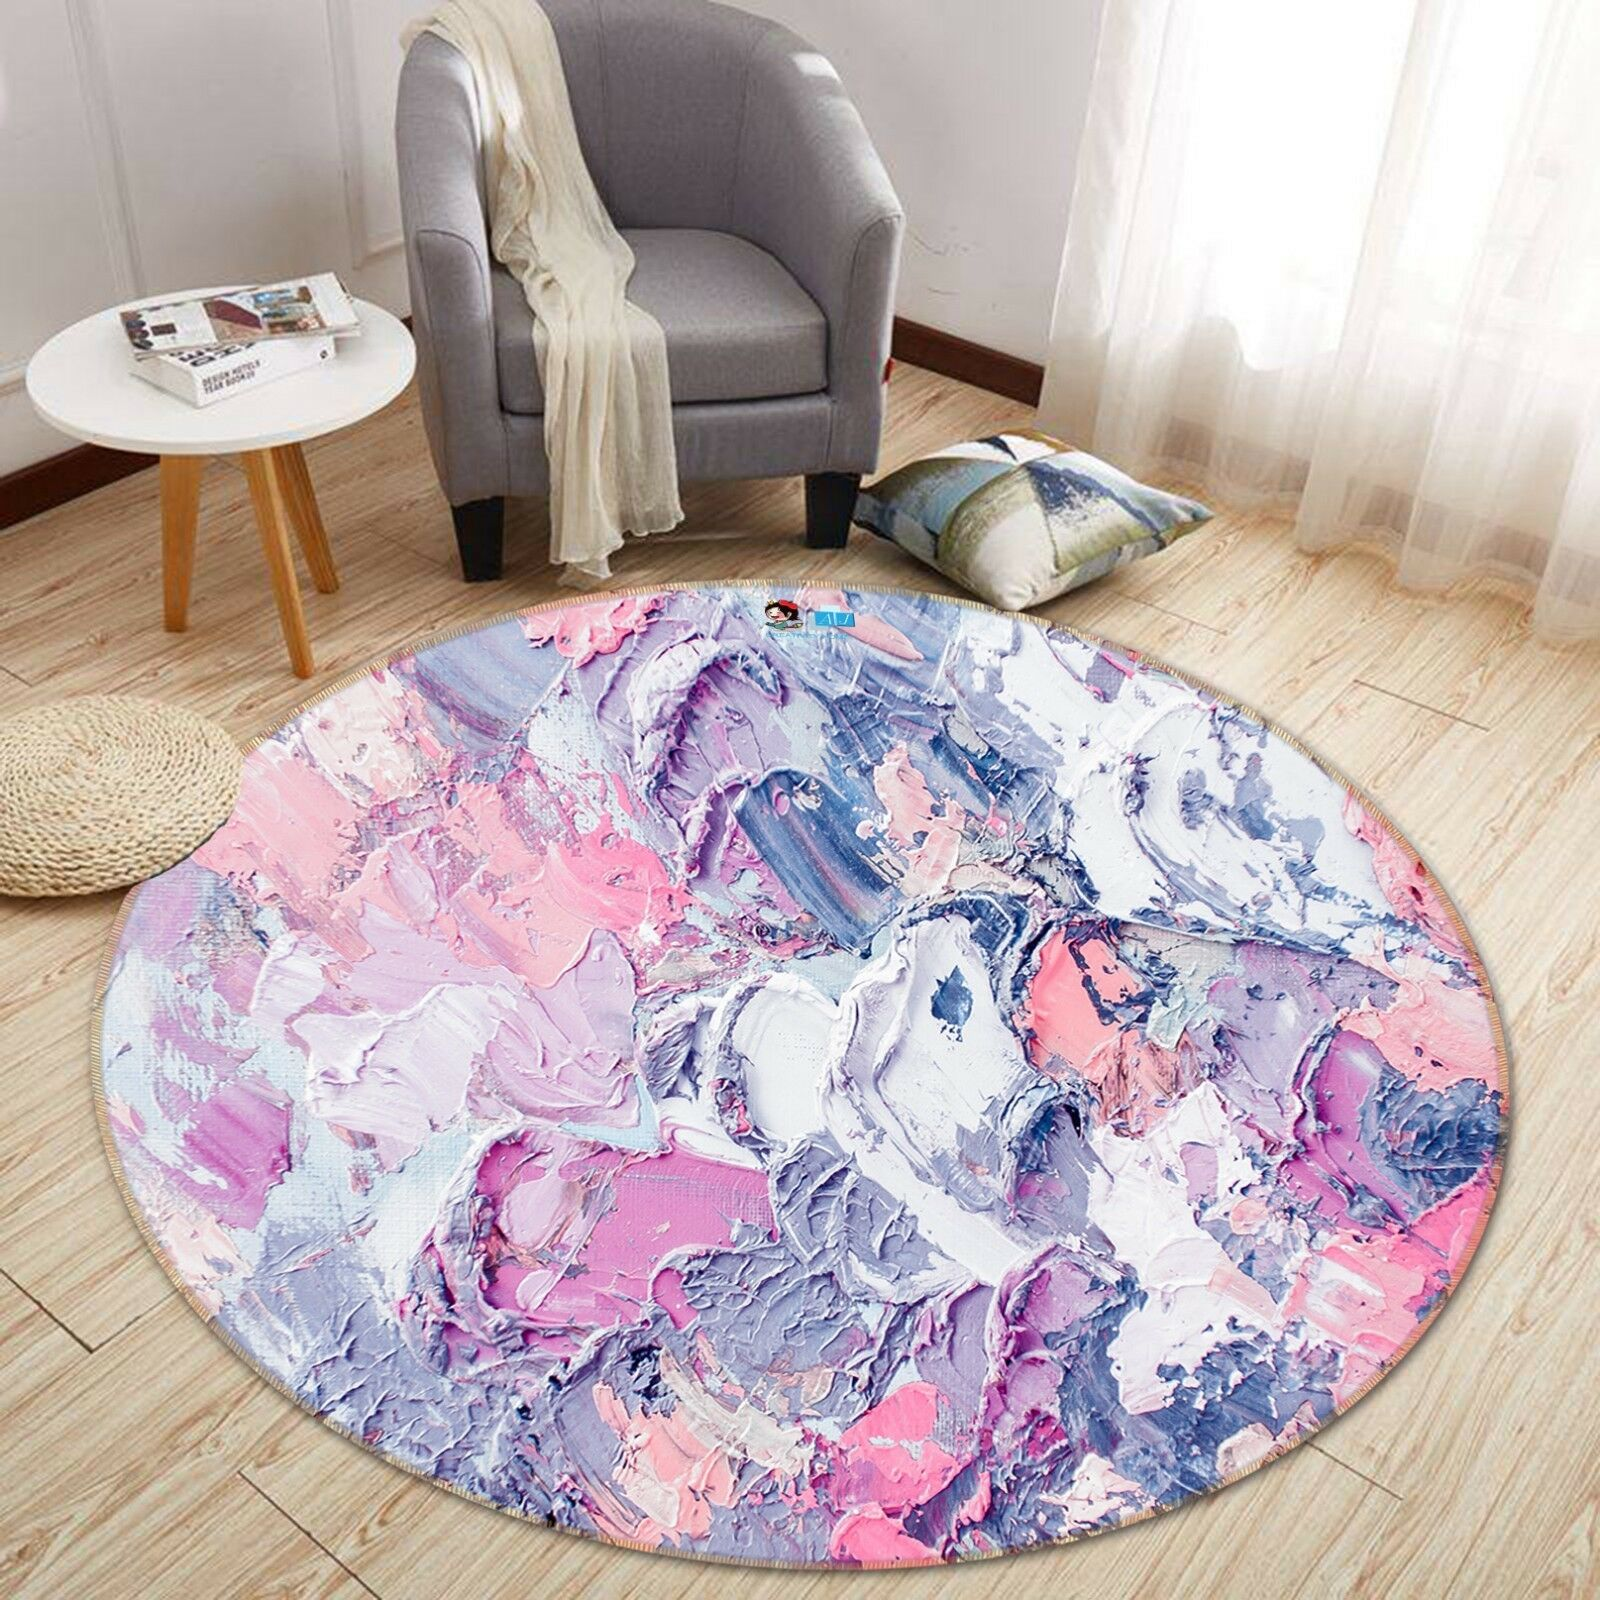 3D Gouache Coating 4 Non Slip Rug Room Mat Round Quality Elegant Photo Carpet AU